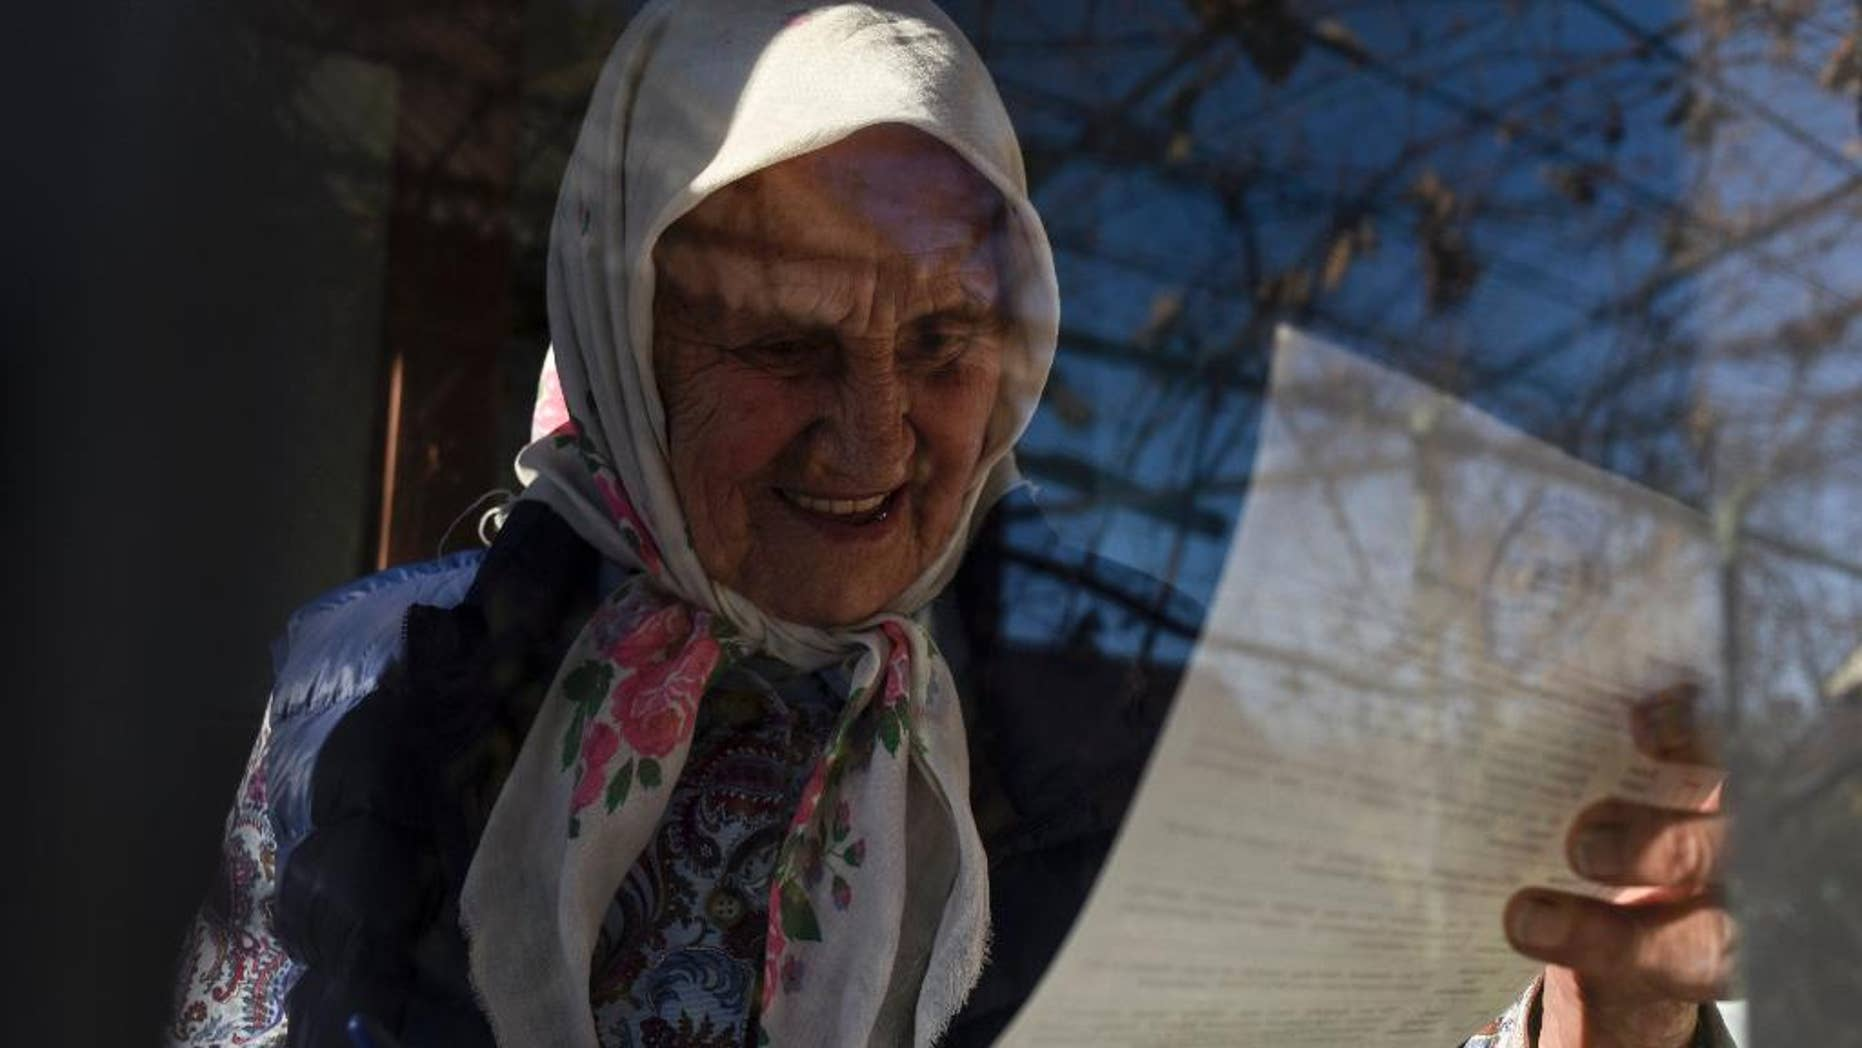 An elderly Ukrainian woman reads a ballot paper in her house during parliamentary elections in the town of Konstantinovka, Donetsk region eastern Ukraine, Sunday, Oct. 26, 2014.  Voters in Ukraine headed to the polls Sunday to elect a new parliament. (AP Photo/Evgeniy Maloletka)